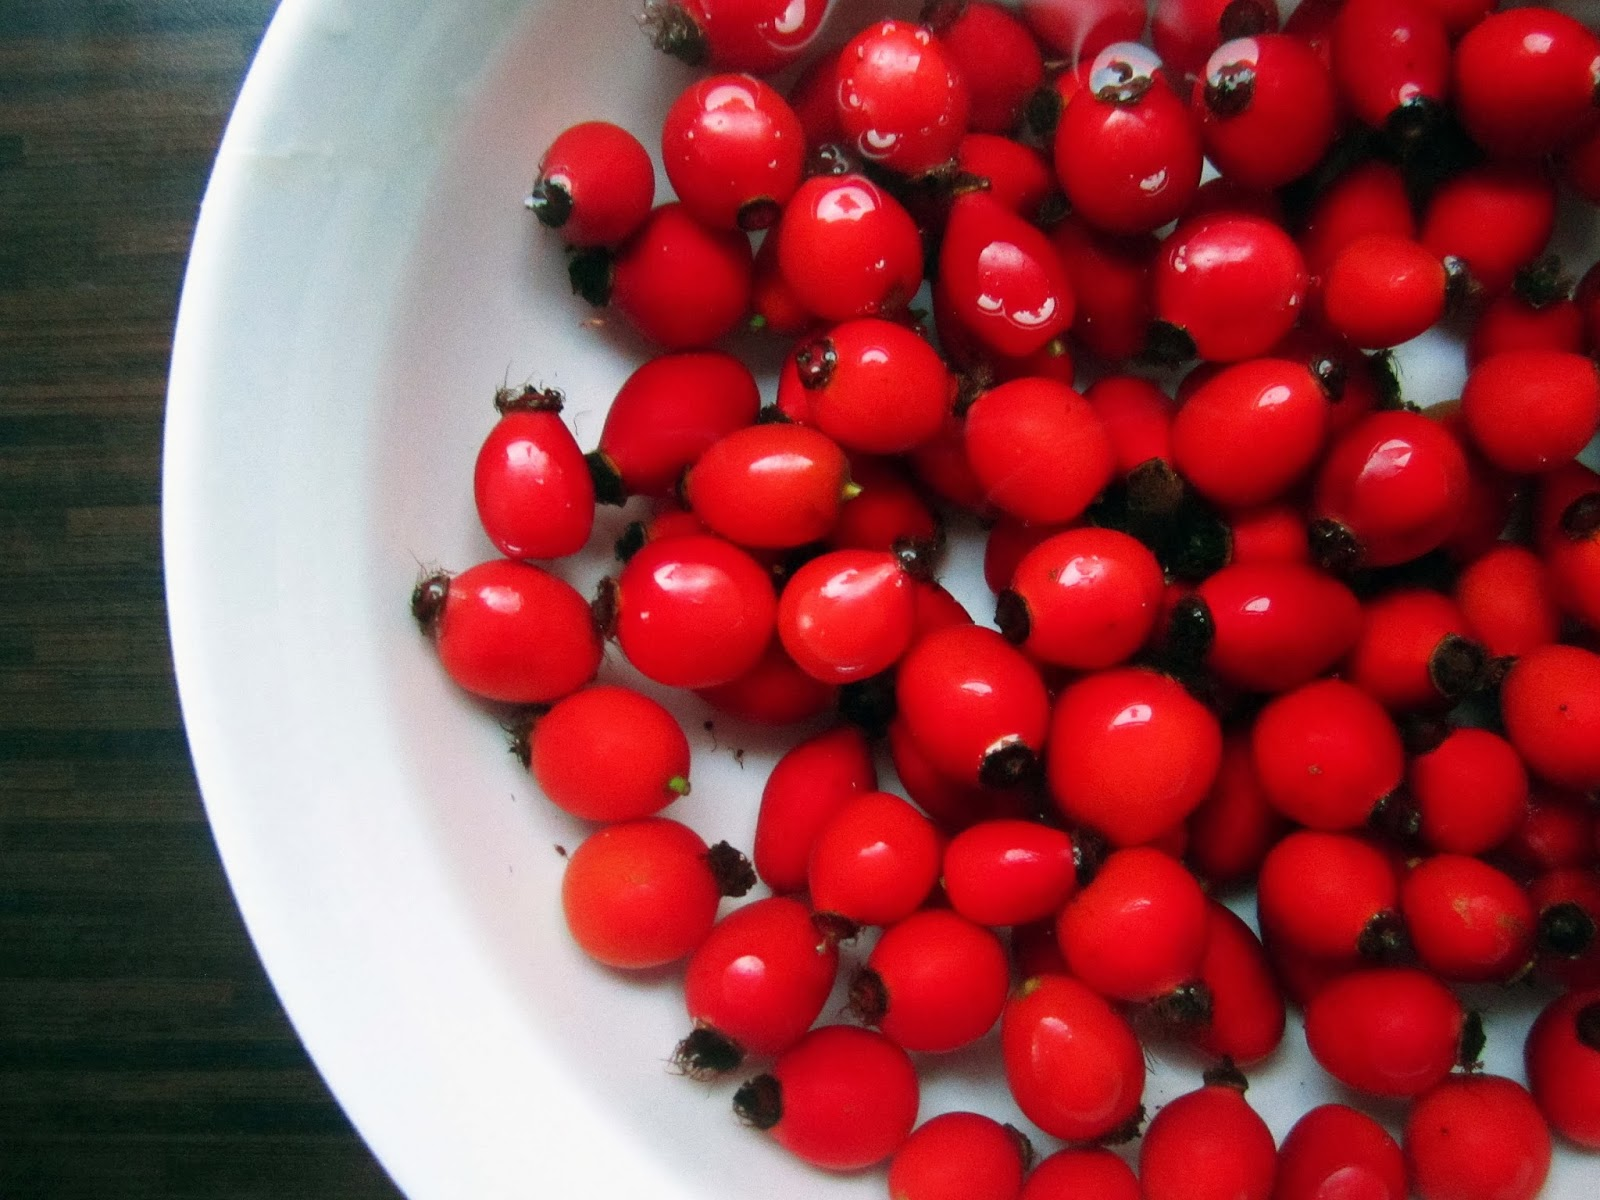 Where to buy rosehips